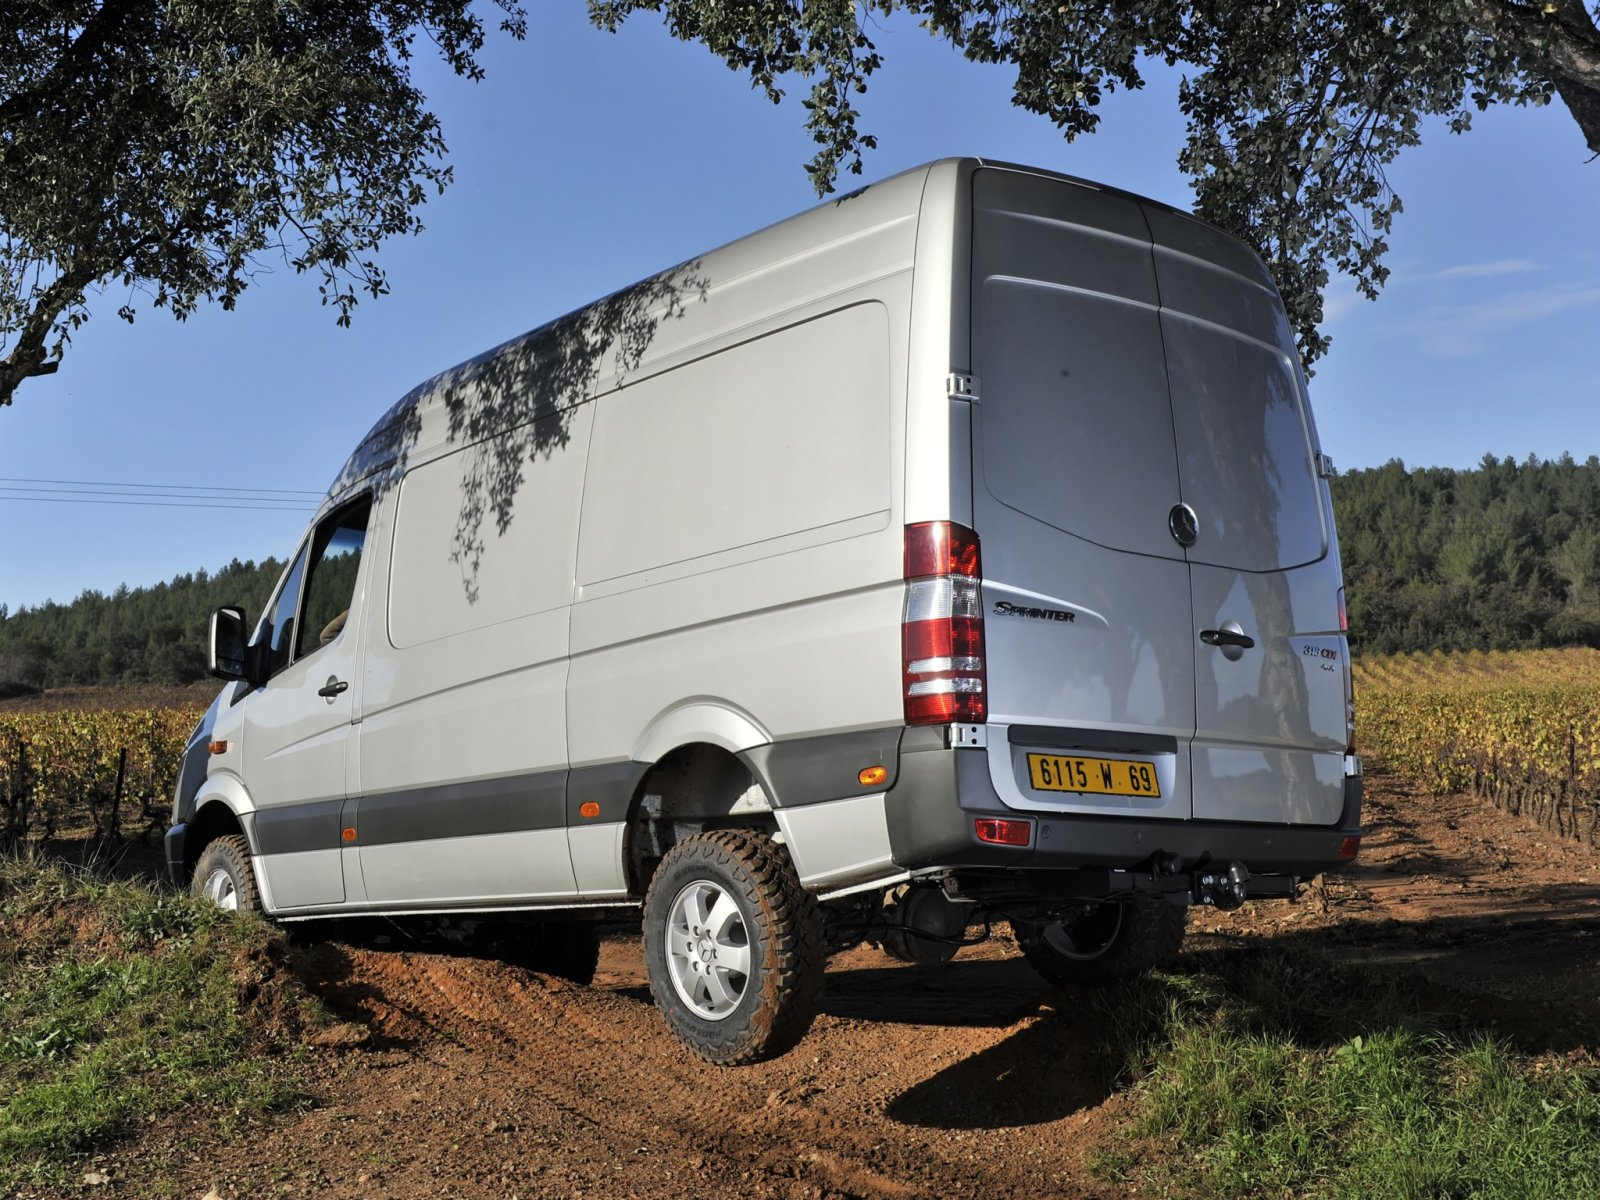 Mercedes-Benz Sprinter 310 2013 photo - 2